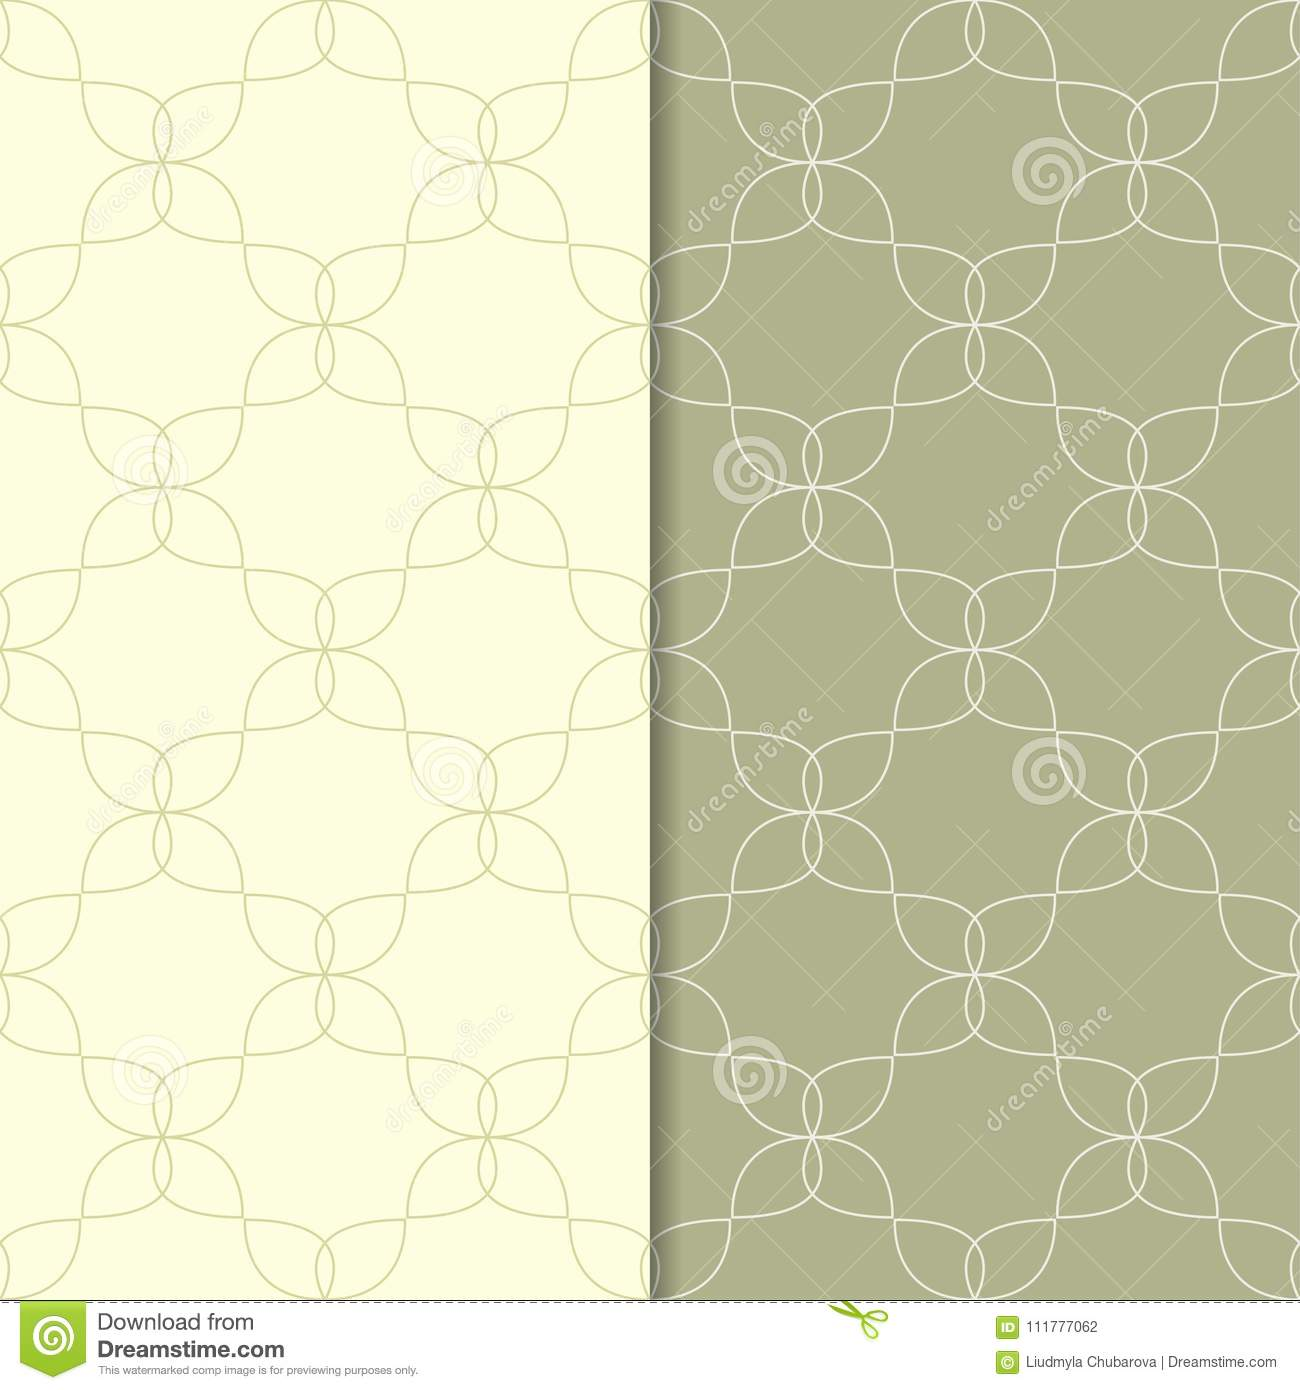 Olive green geometric ornaments. Set of seamless patterns